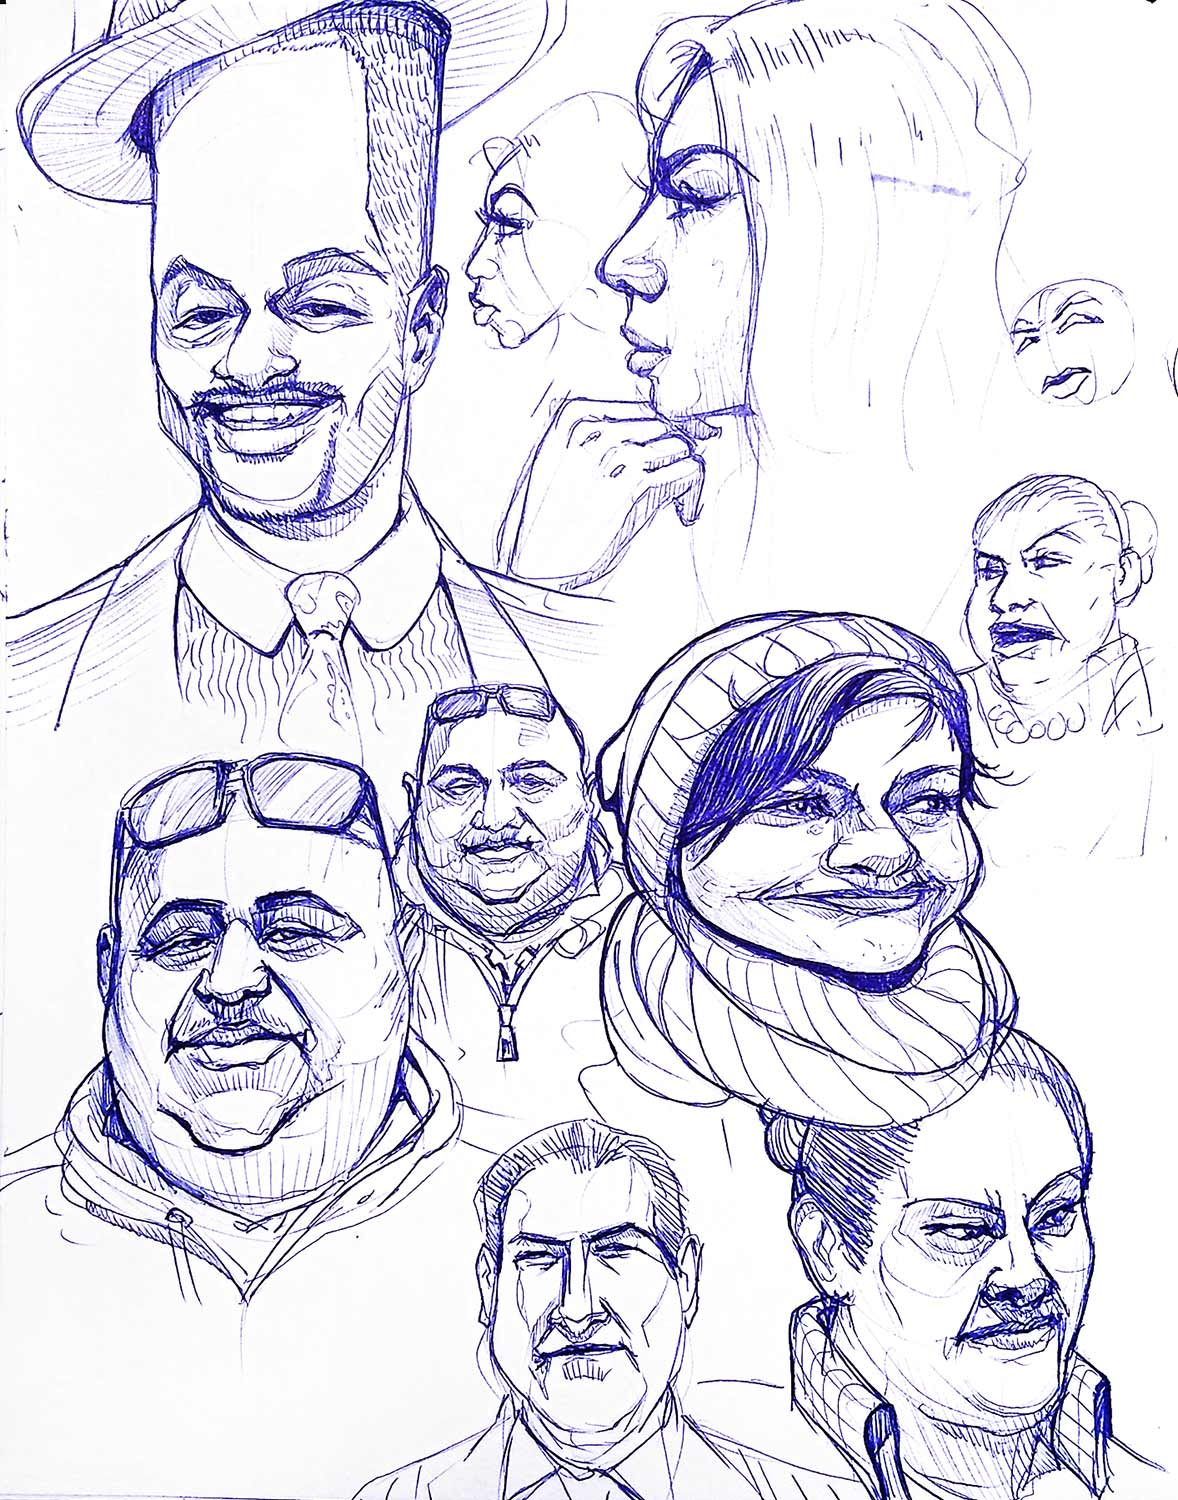 Sketchbook_faces2_web.jpg